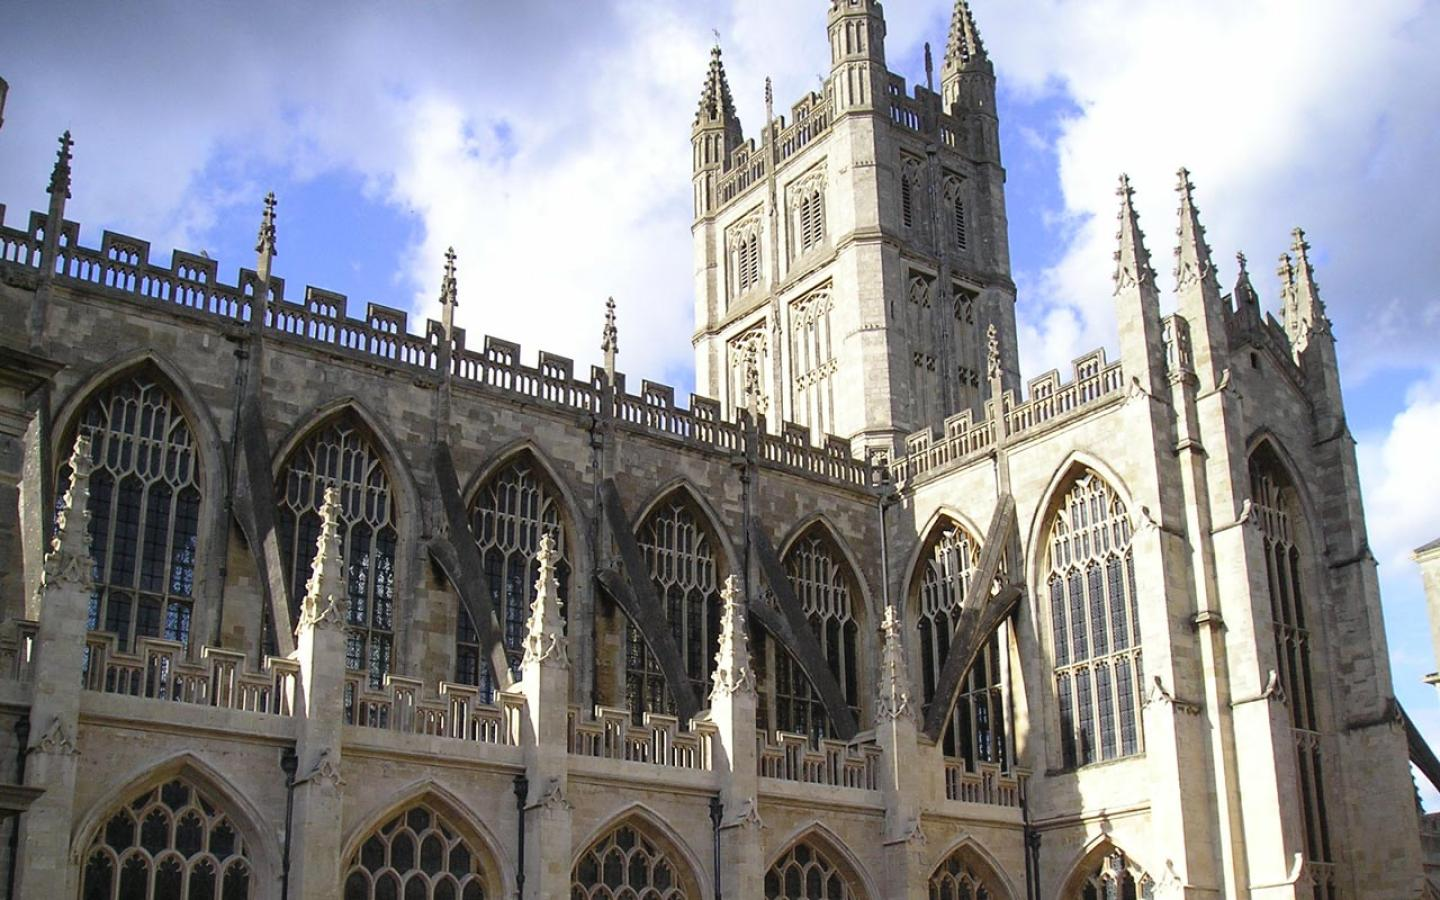 Bath - The Abbey Wallpaper #4 1440 x 900